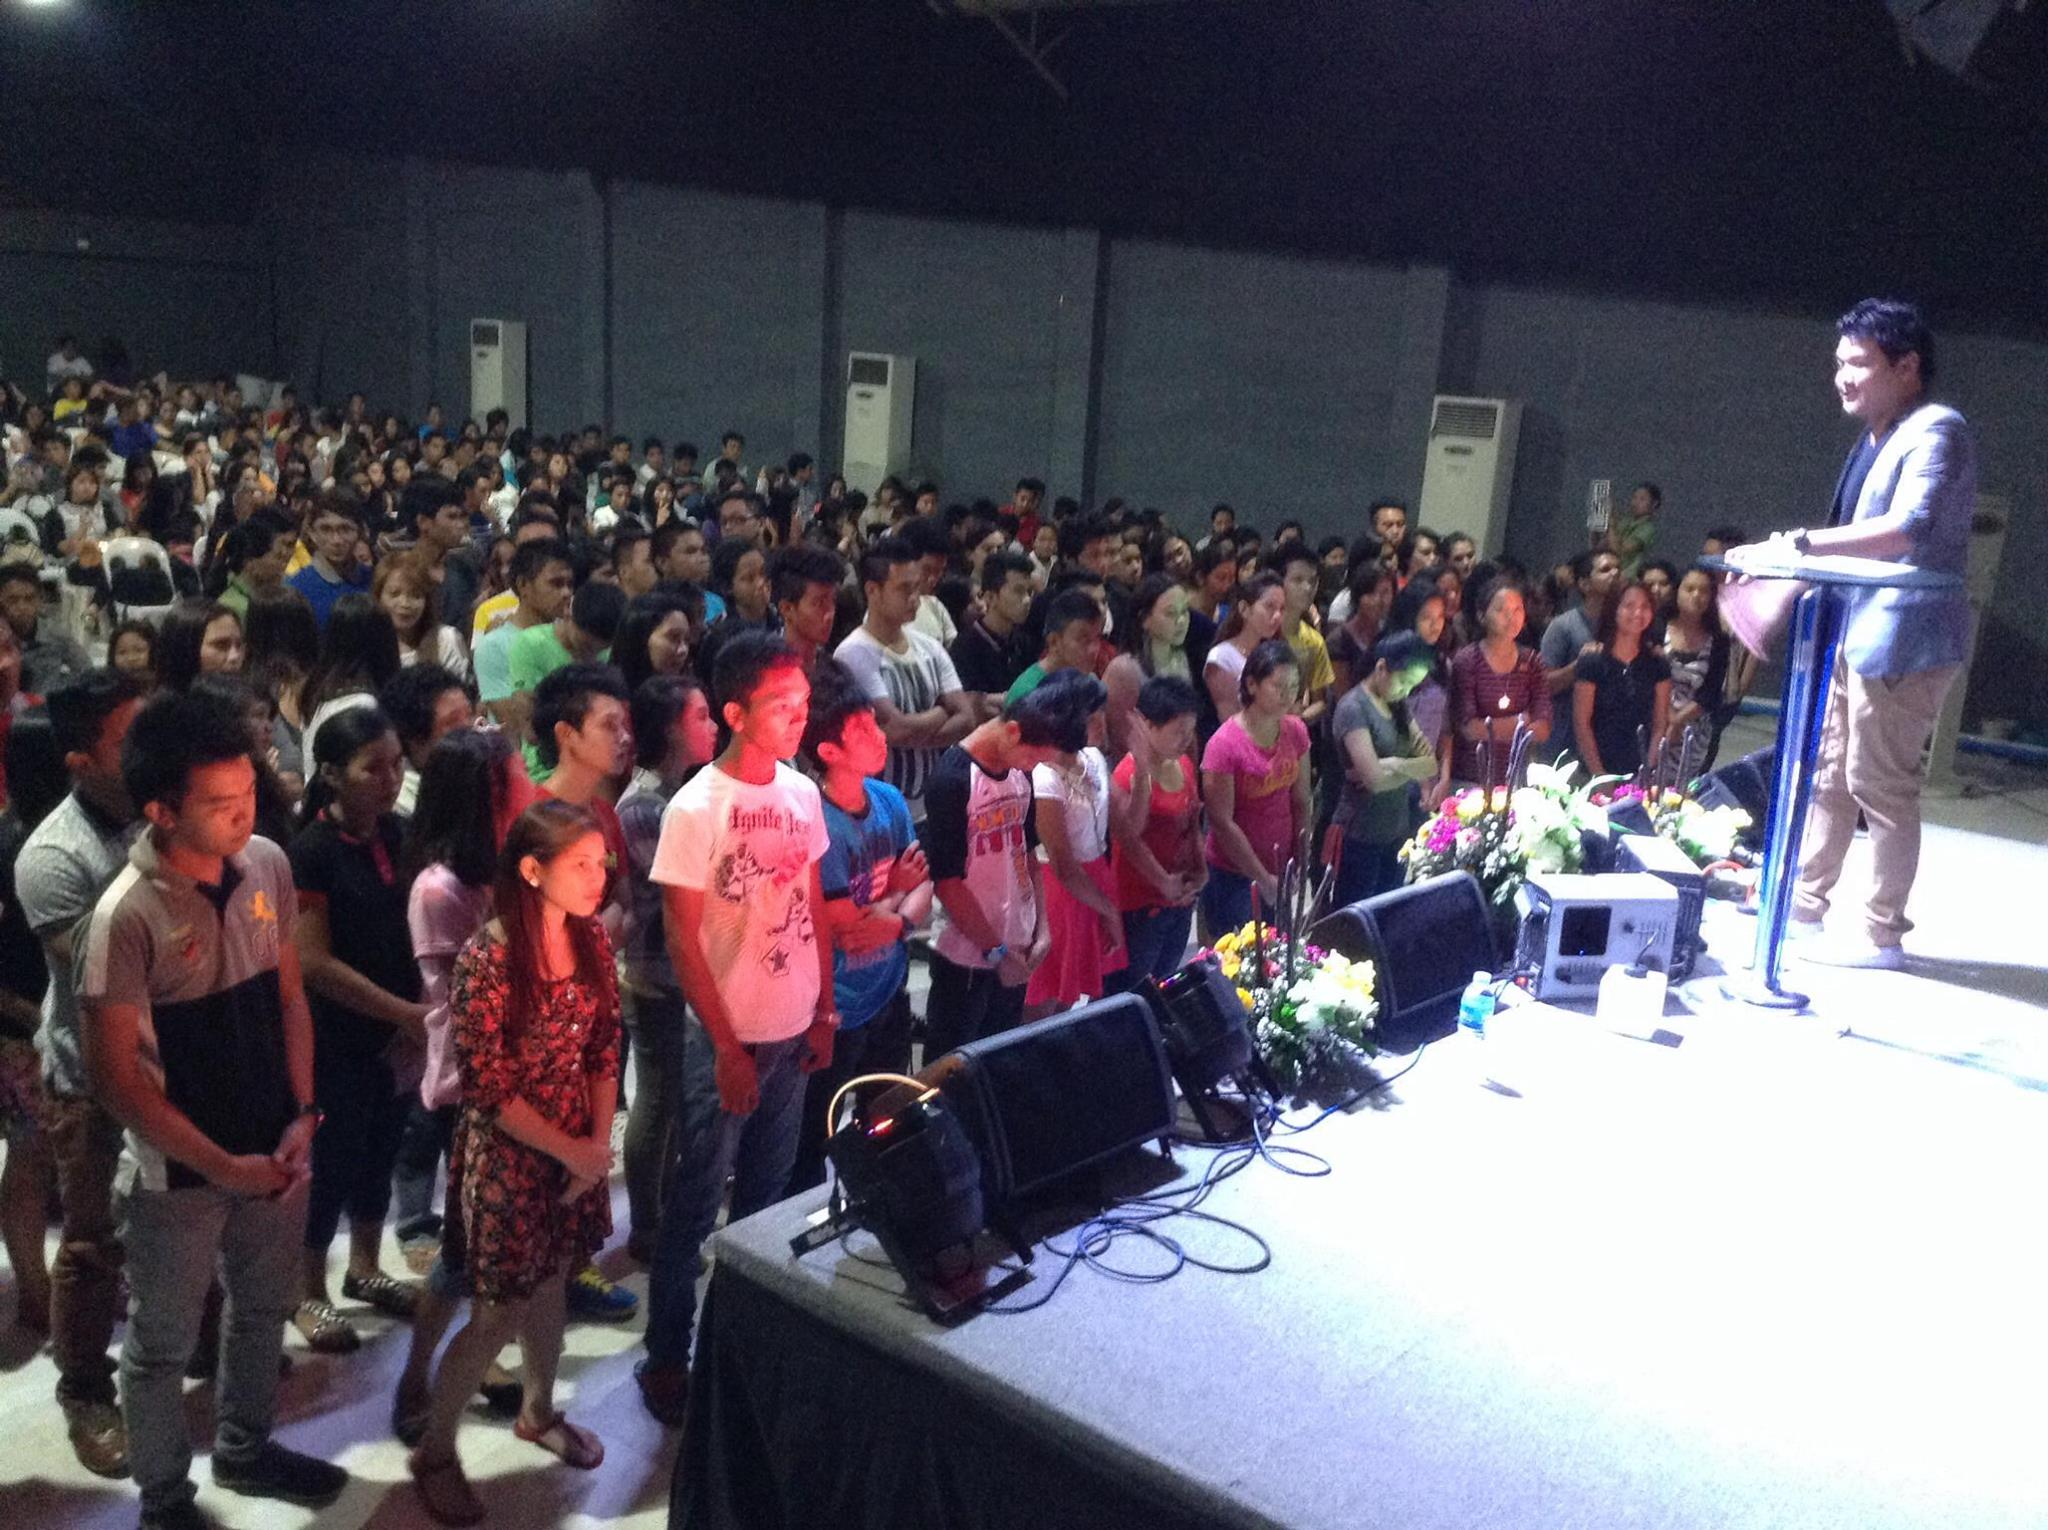 In the Philippines, our Davao campus was packed wall-to-wall with people, and 45 of them came forward to receive Christ at the close of service!